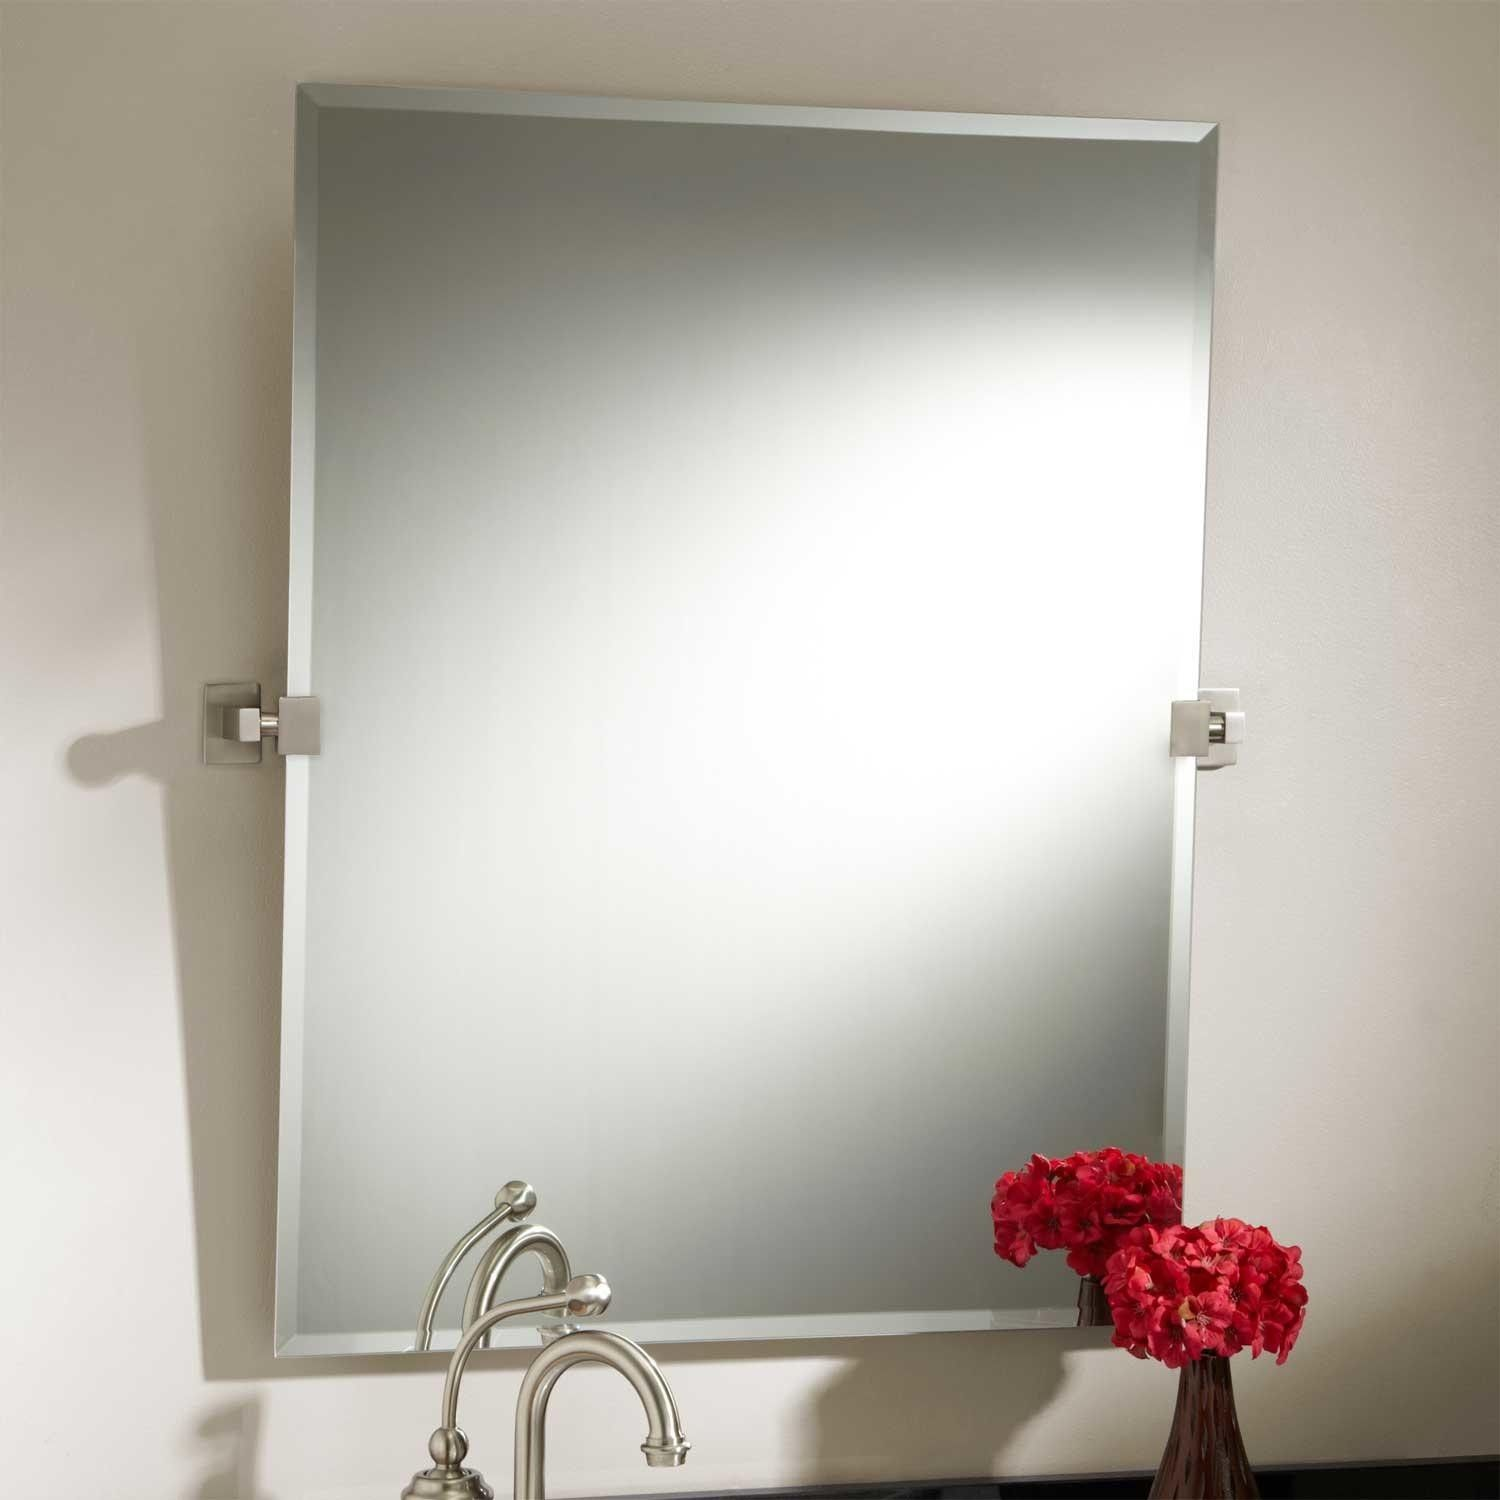 Square Tilting Bathroom Mirror